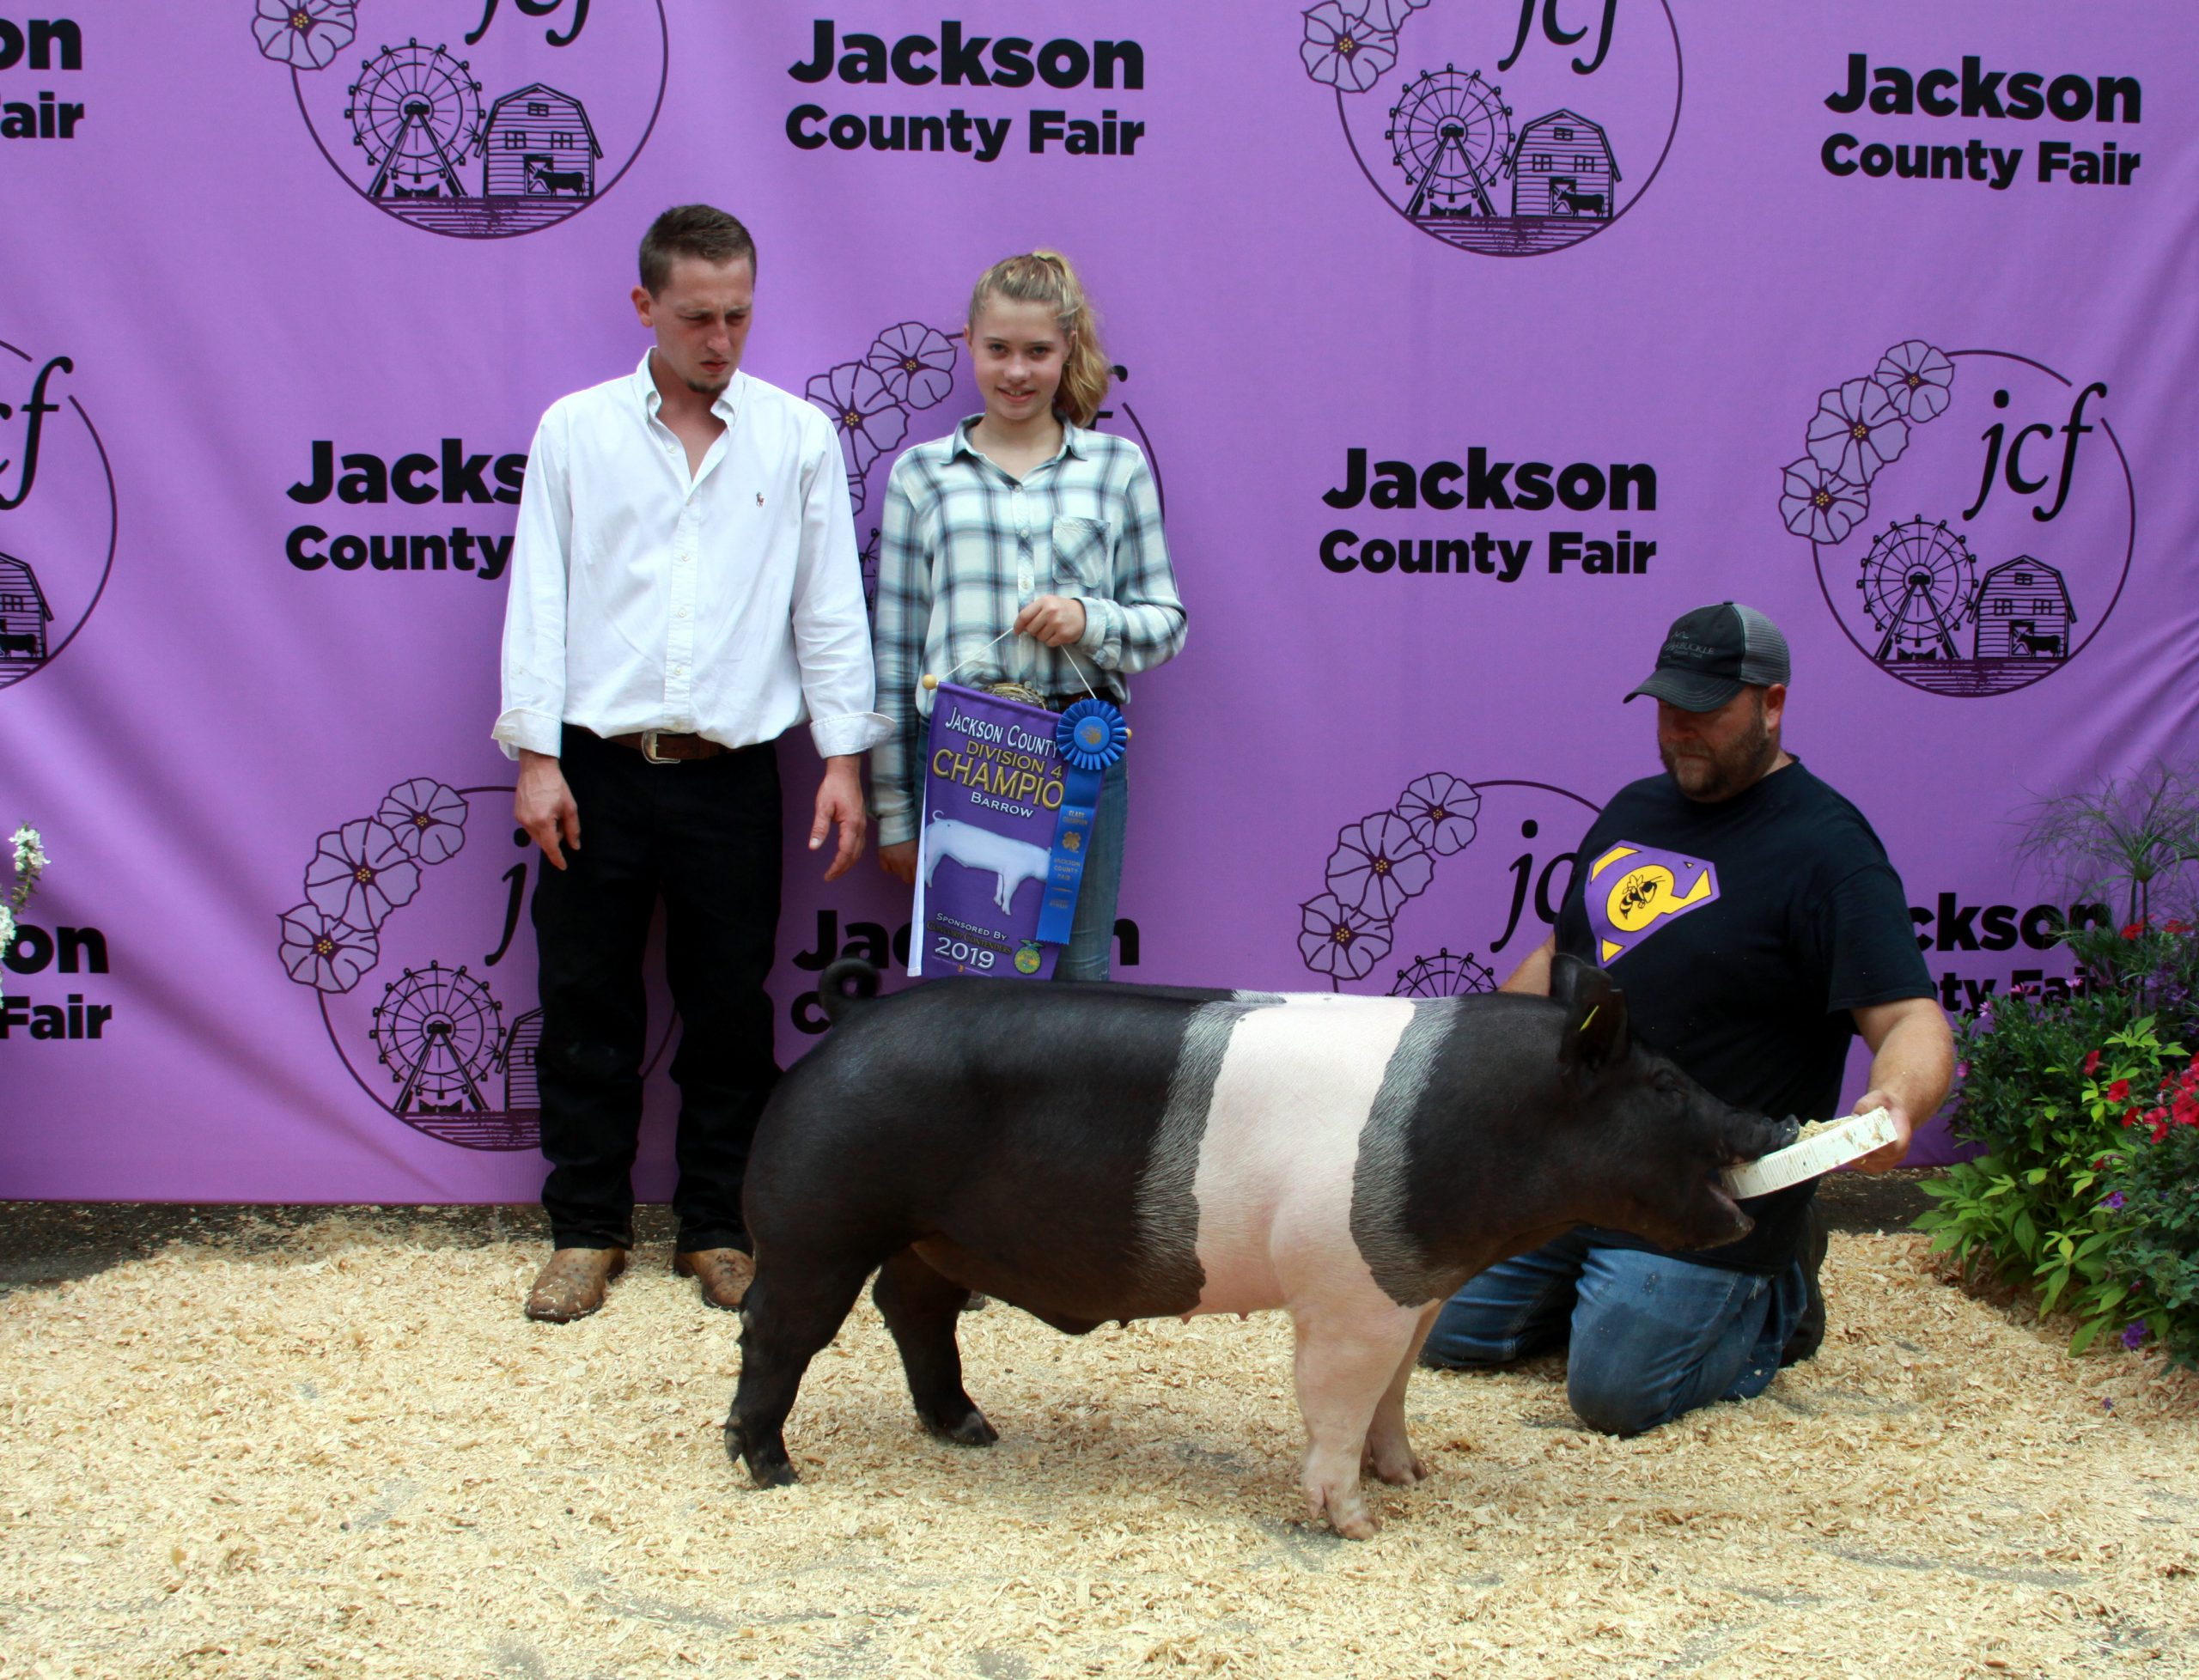 Jackson County Fair, Division 4 Champion Barrow, Sired by Keg Stand